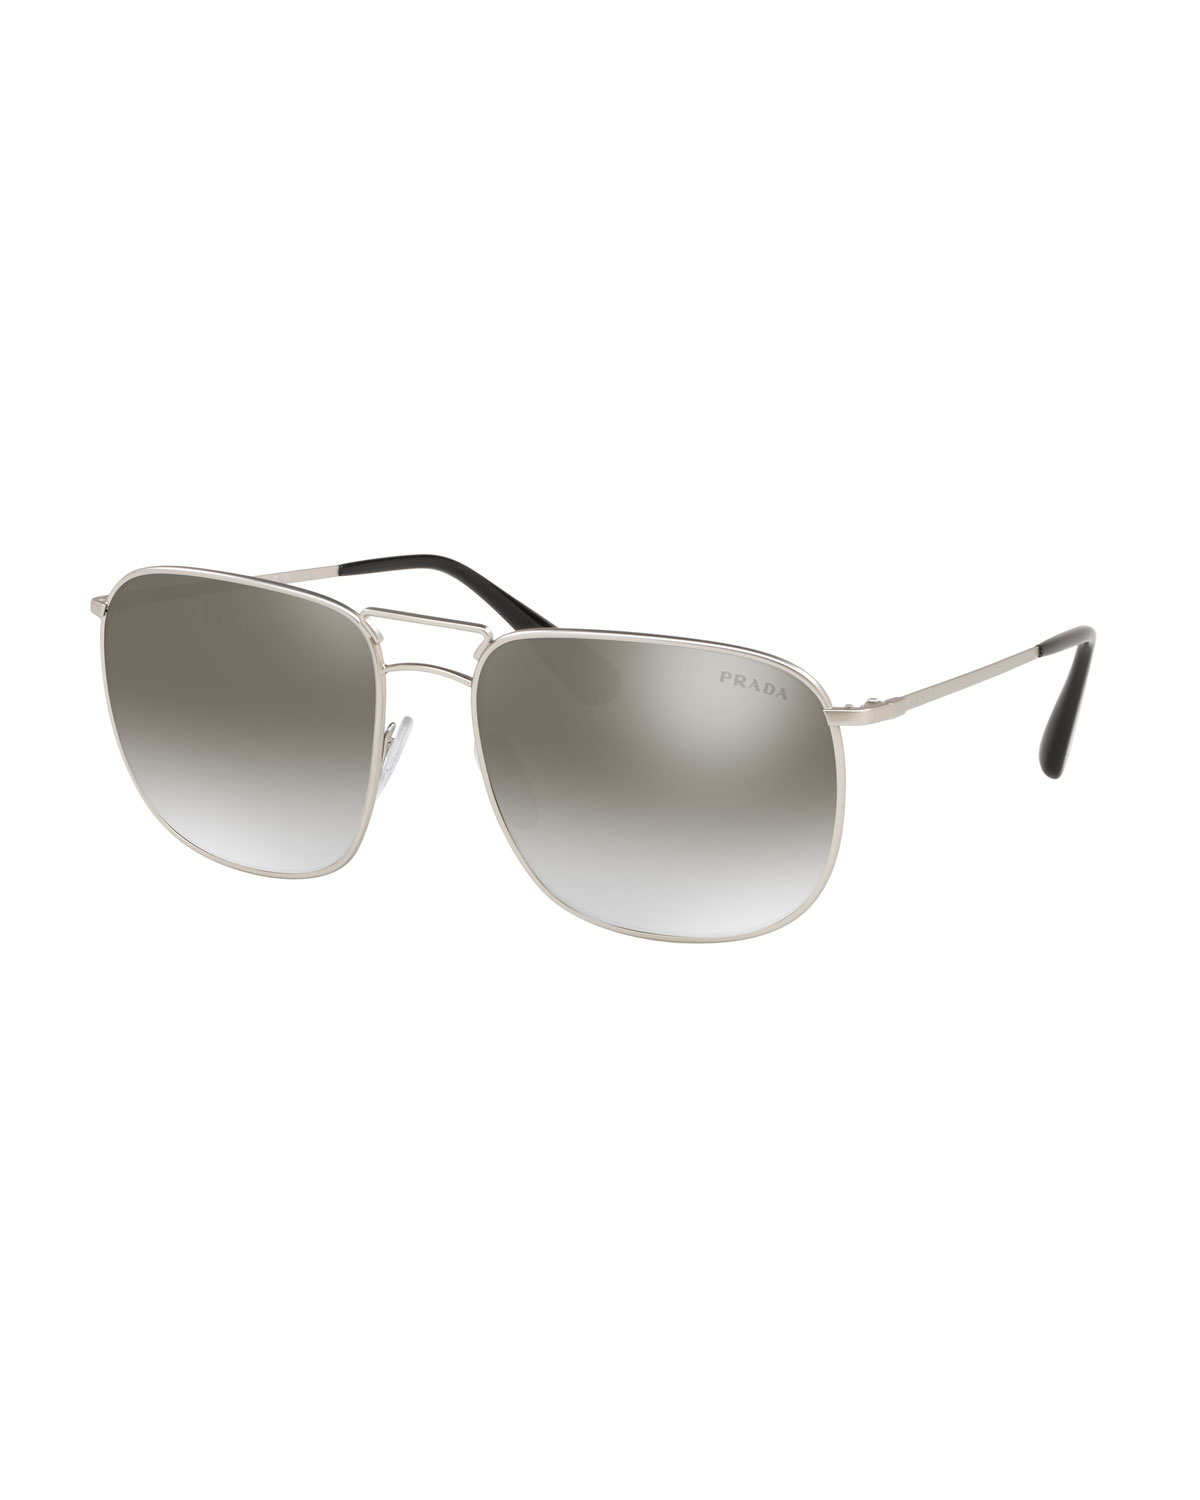 b58efd052656 PRADA MEN S SQUARE METAL AVIATOR SUNGLASSES - MIRRORED LENSES